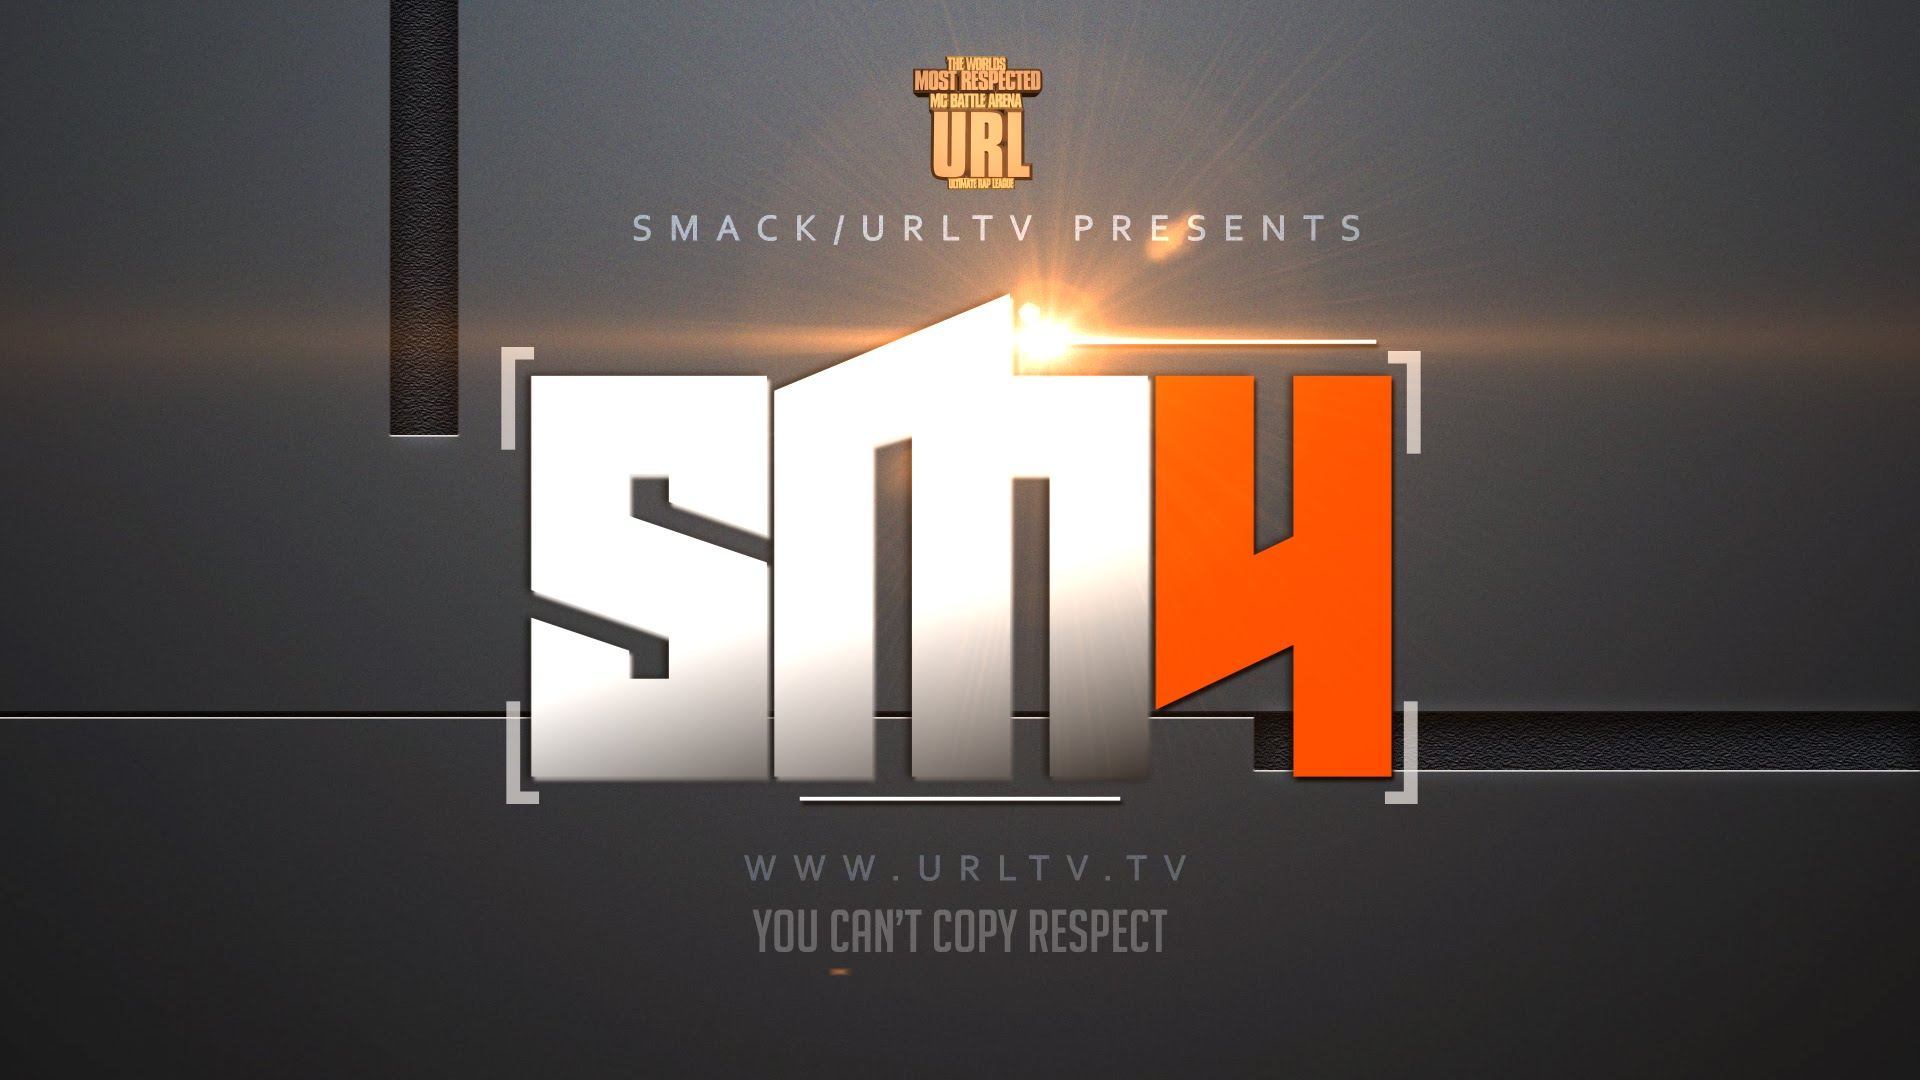 URL's Summer Madness 4 Live Coverage